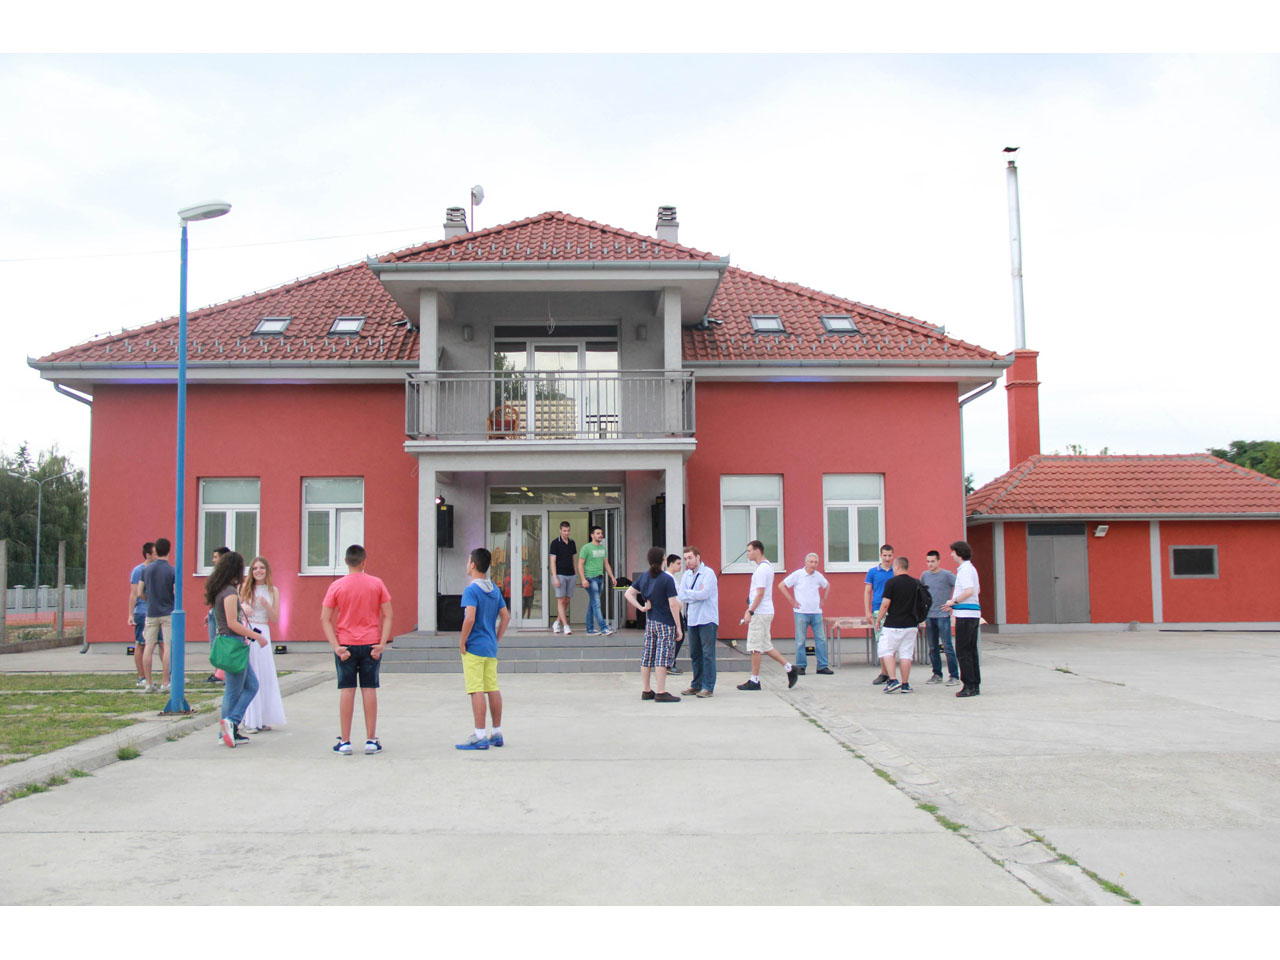 KORAK NAPRED EDUCATIVE CENTER Schools and high schools Beograd